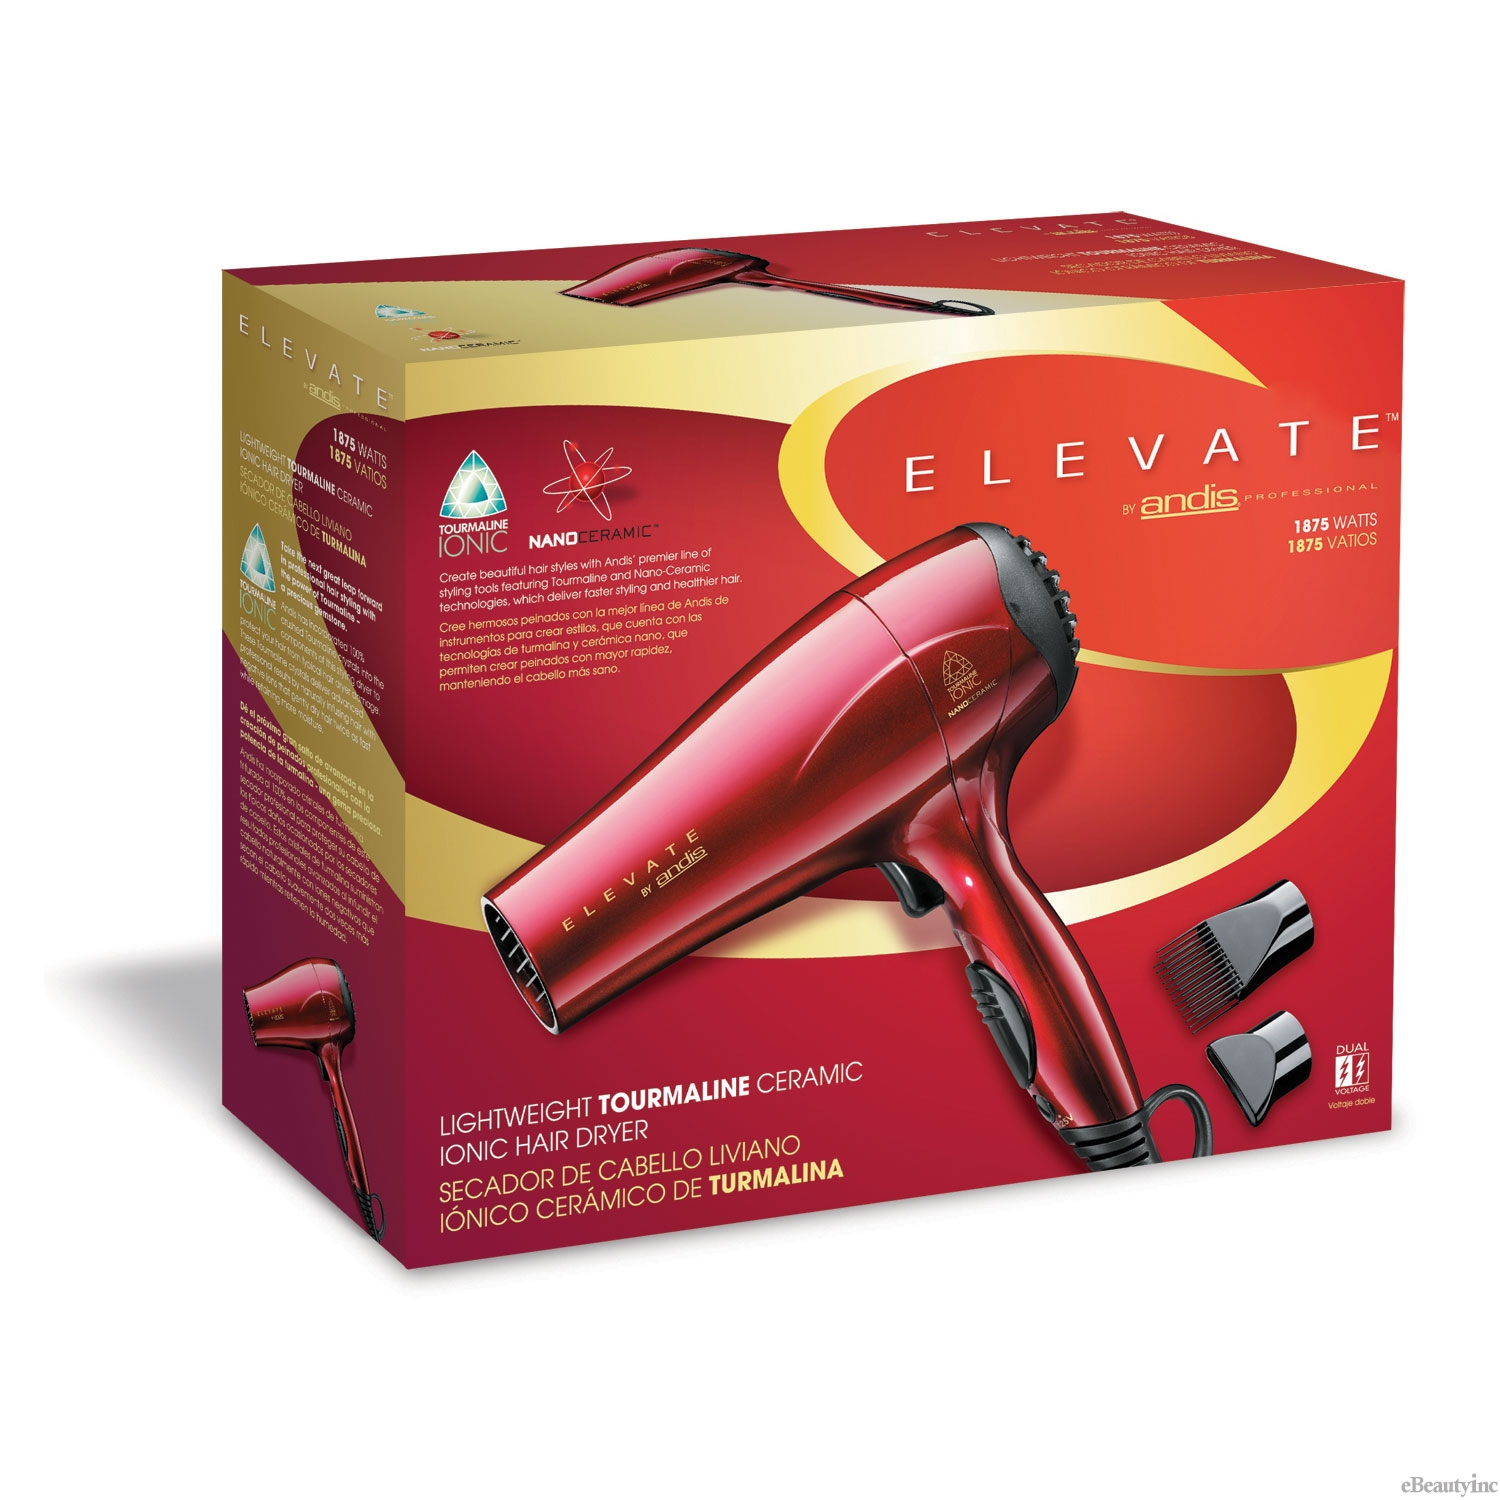 Image of Andis Elevate Lightweight Tourmaline Ceramic Hair Dryer #80405